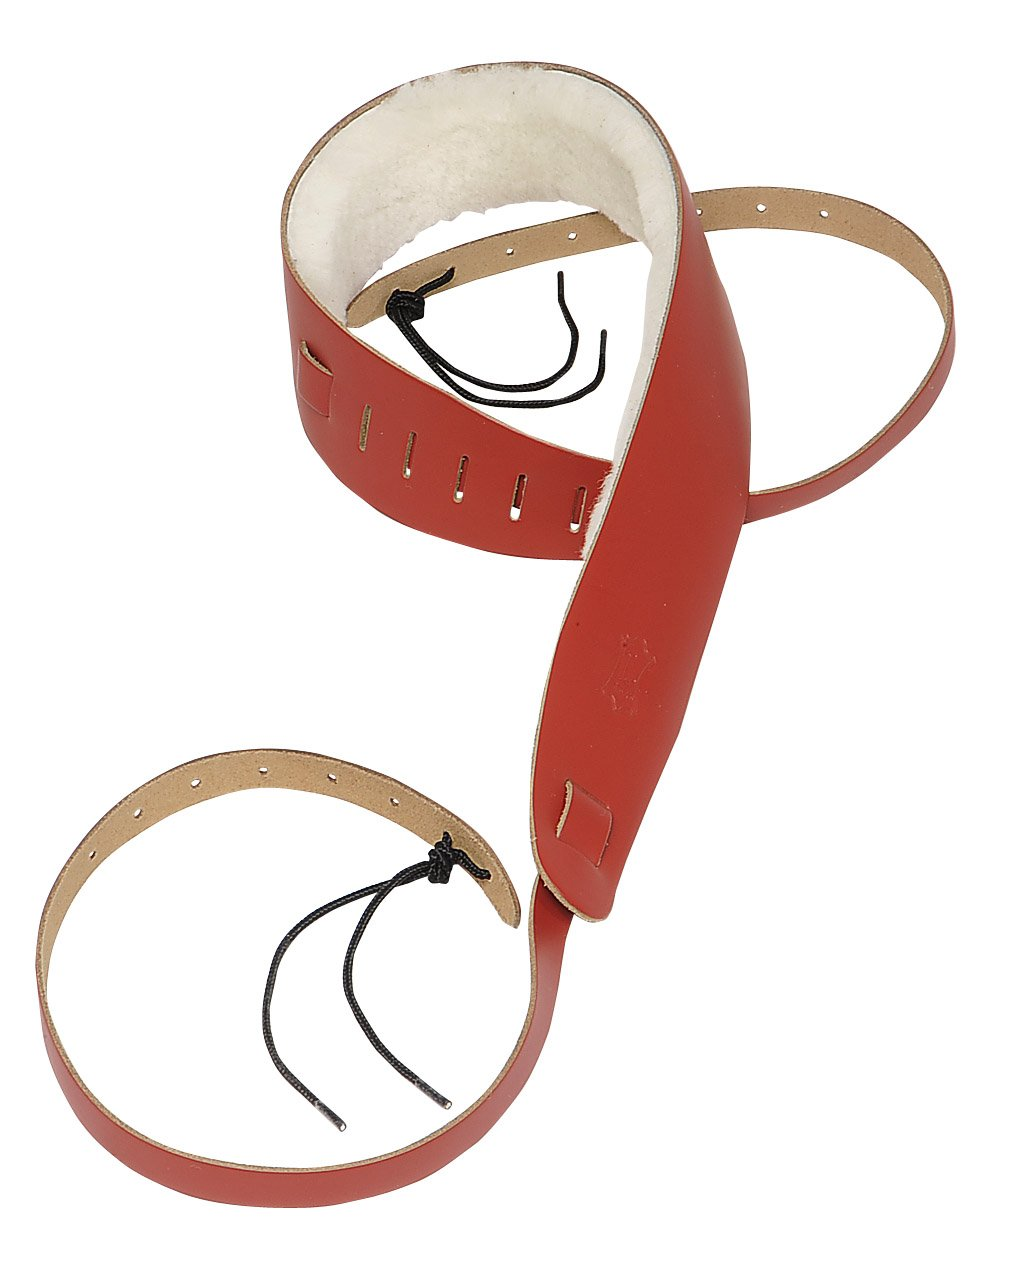 Levy's Leathers PM14-BRG Leather Banjo Cradle Strap, Burgundy Levy' s Leathers